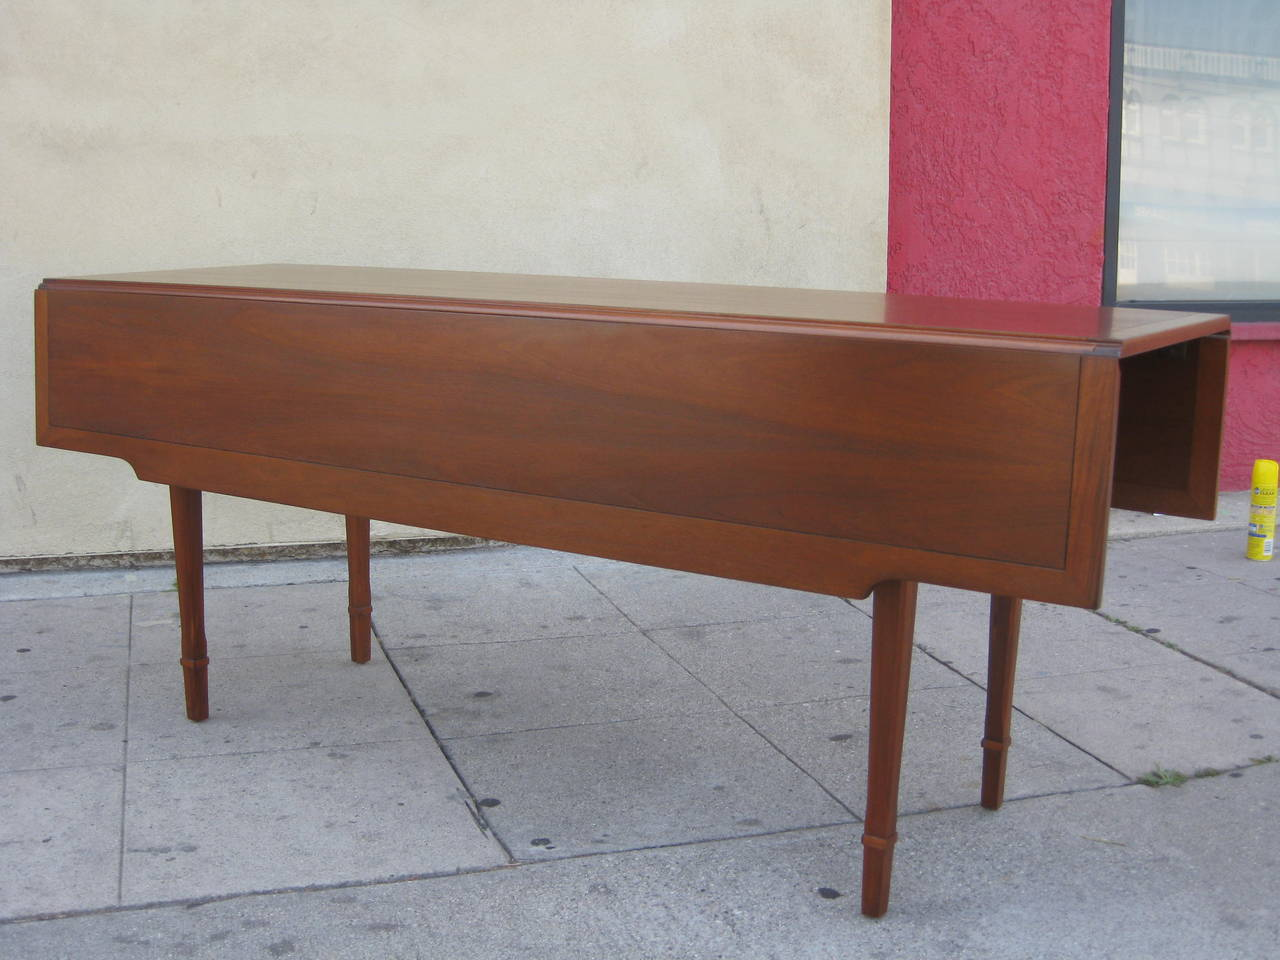 Walnut Drop Leaf Dining or Console Table by Drexel at 1stdibs : IMG2387l from 1stdibs.com size 1280 x 960 jpeg 118kB